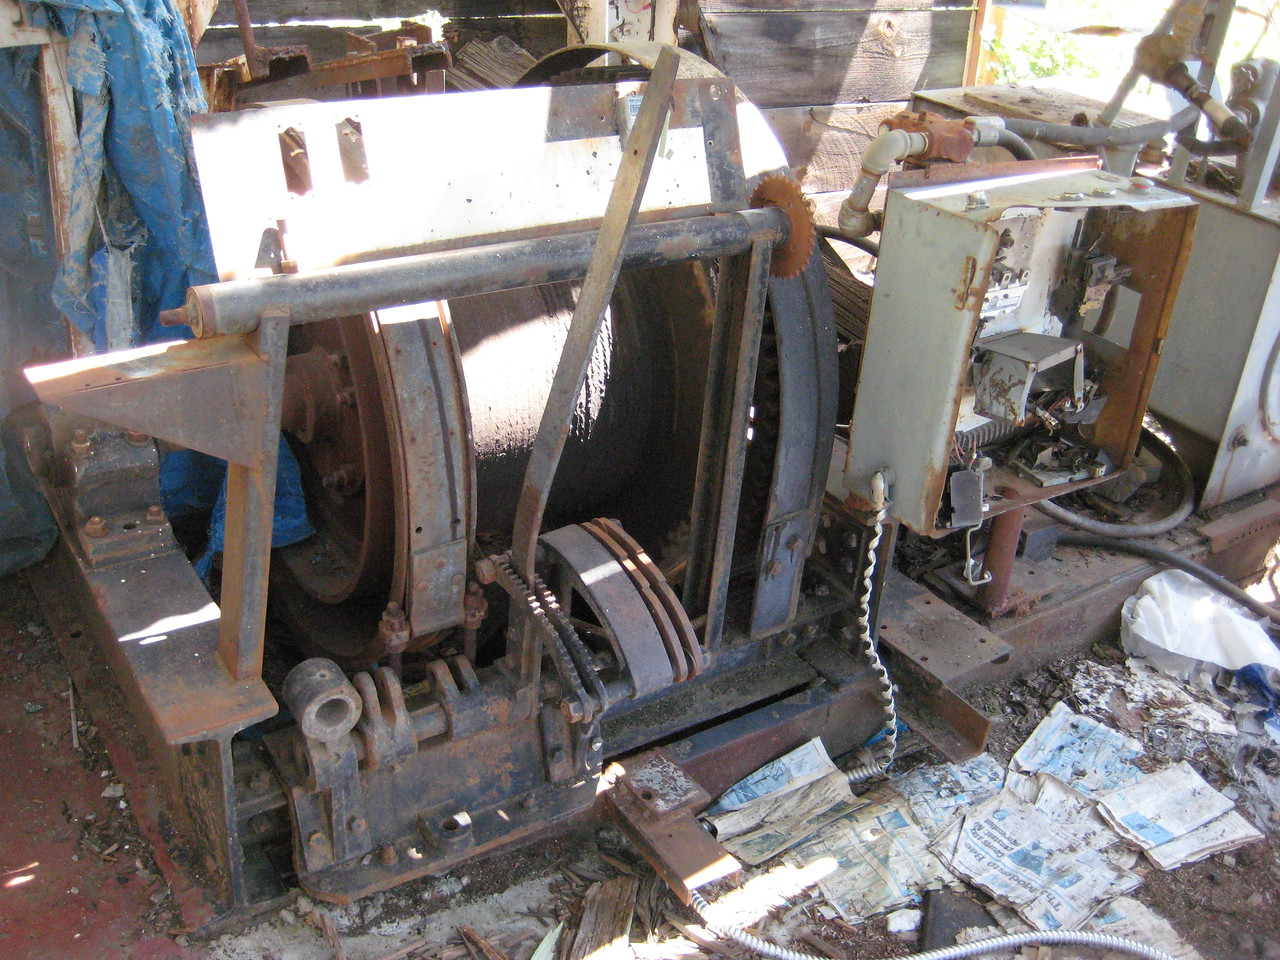 The winch used to pull the ore cars out of the mine.